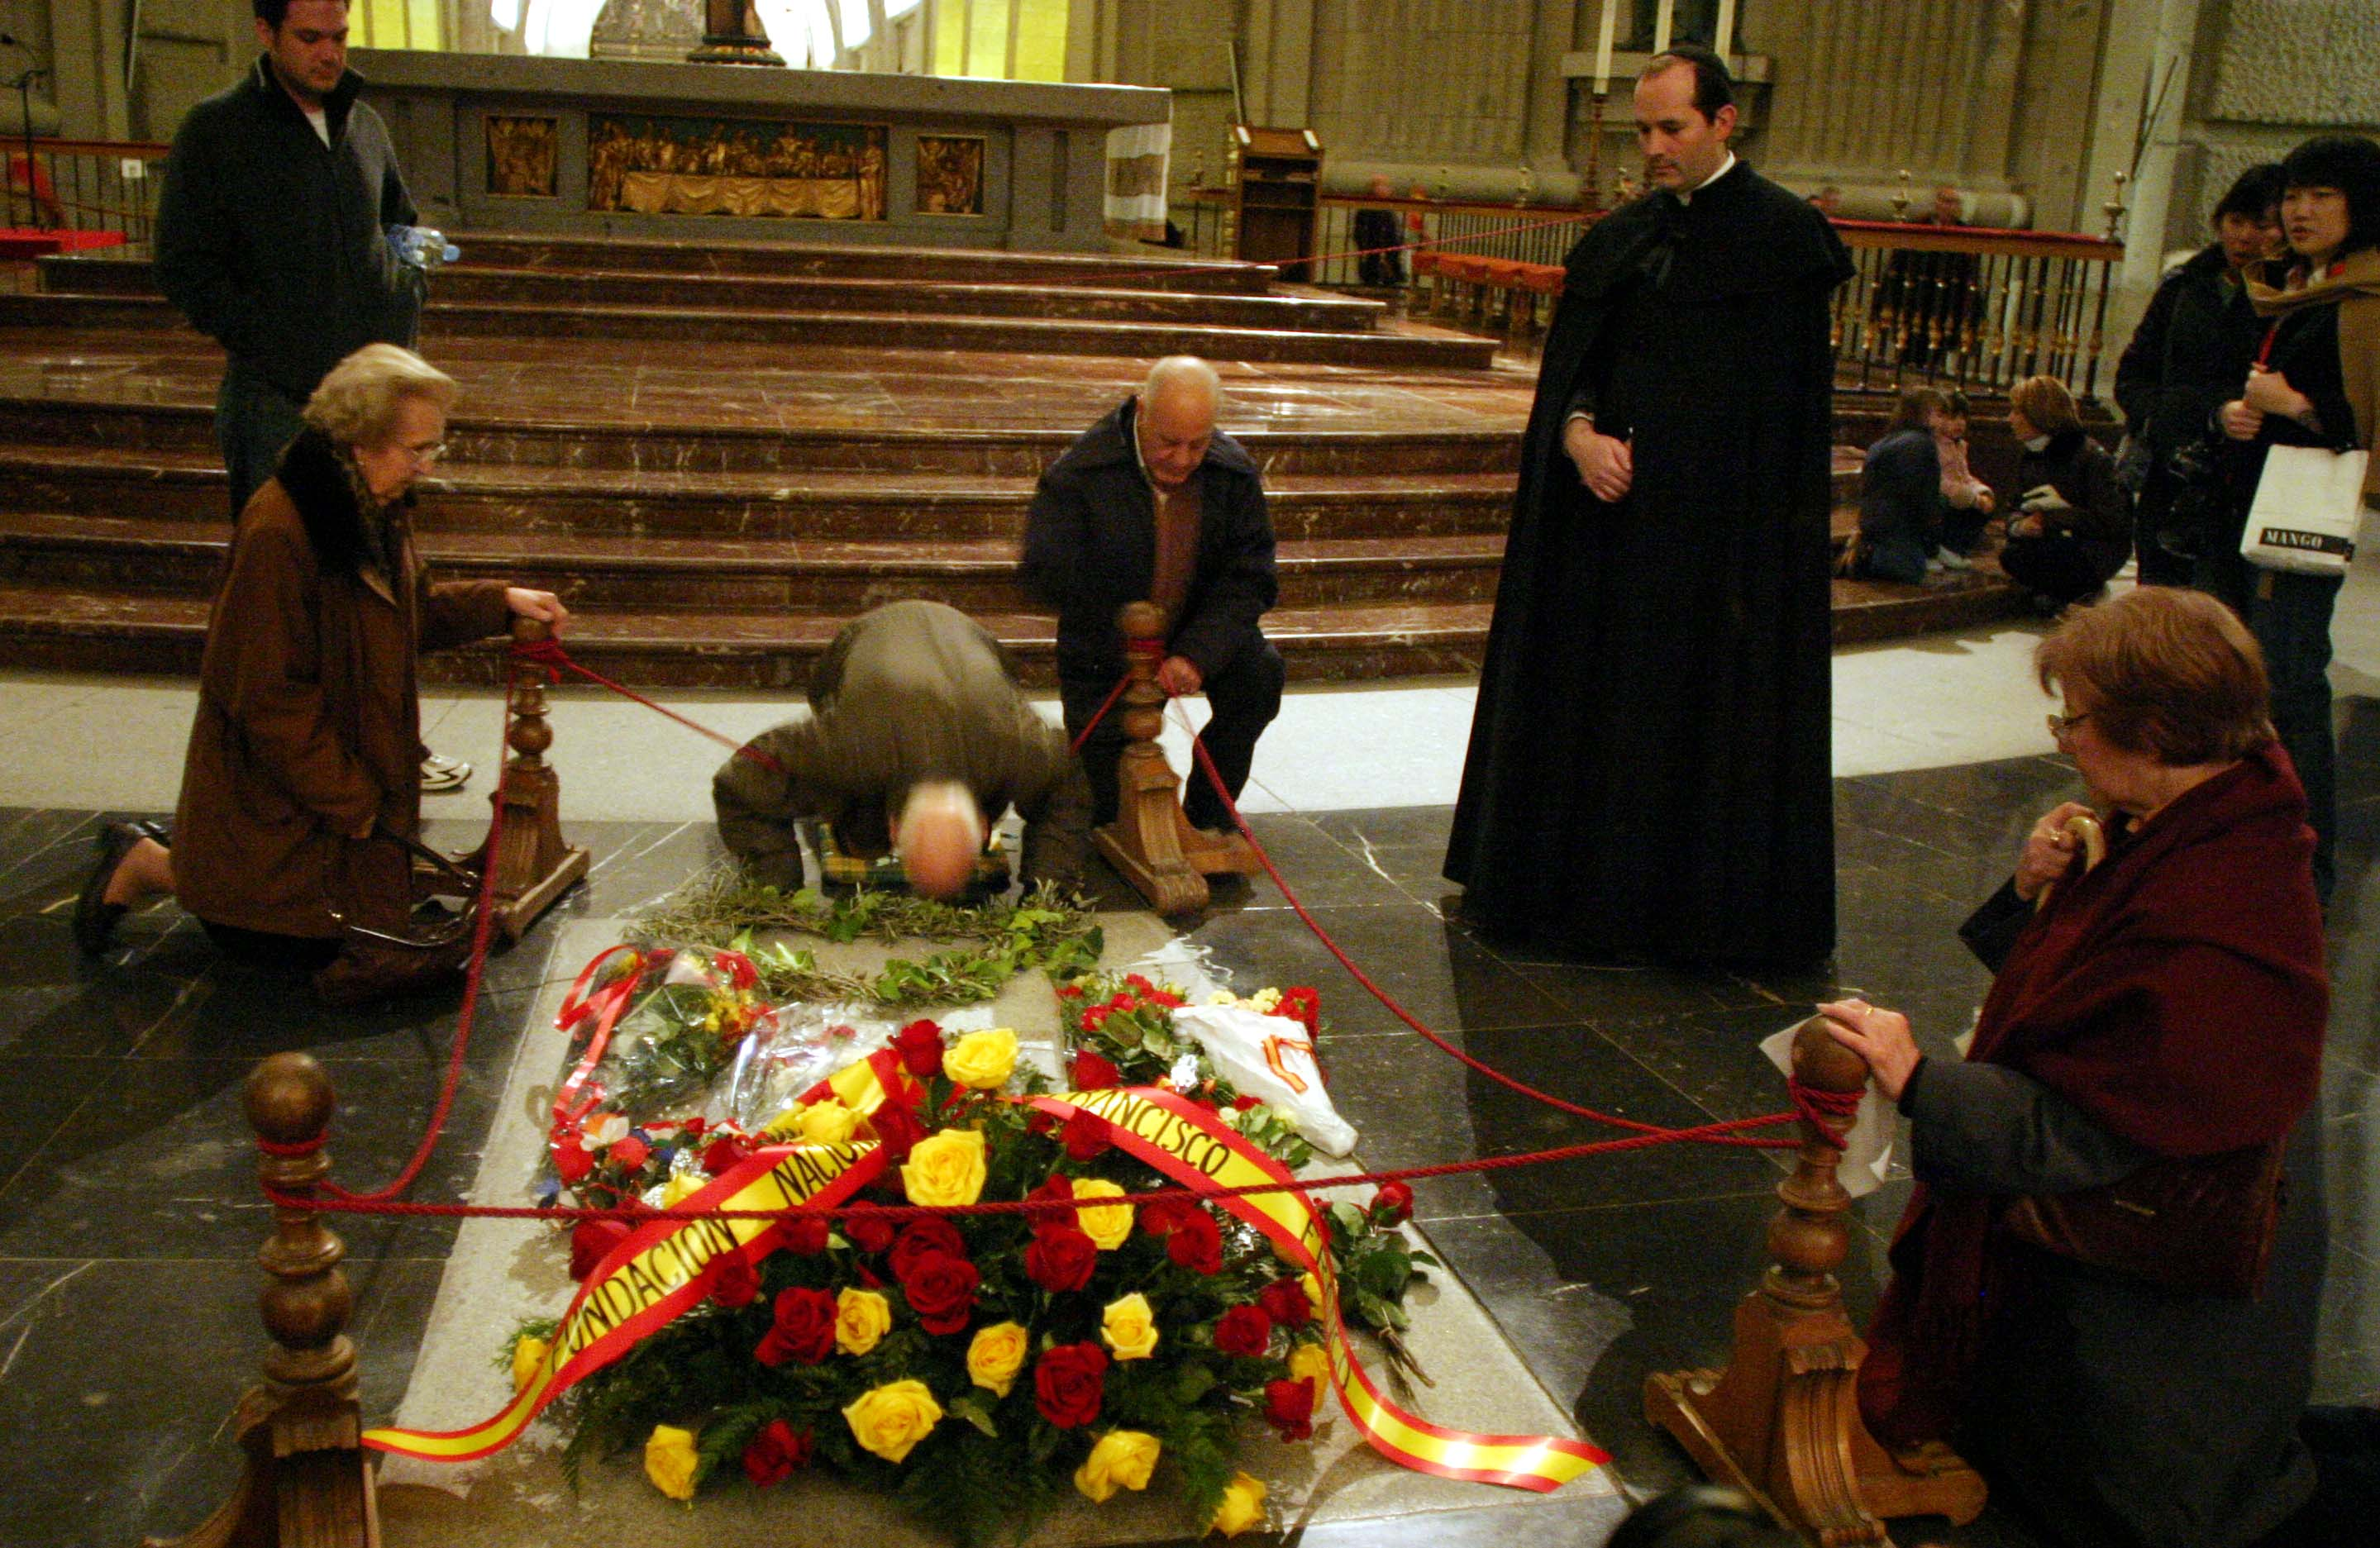 People pay their respects at the tomb of Spain's former dictator Franco in the Valle de los Caidos